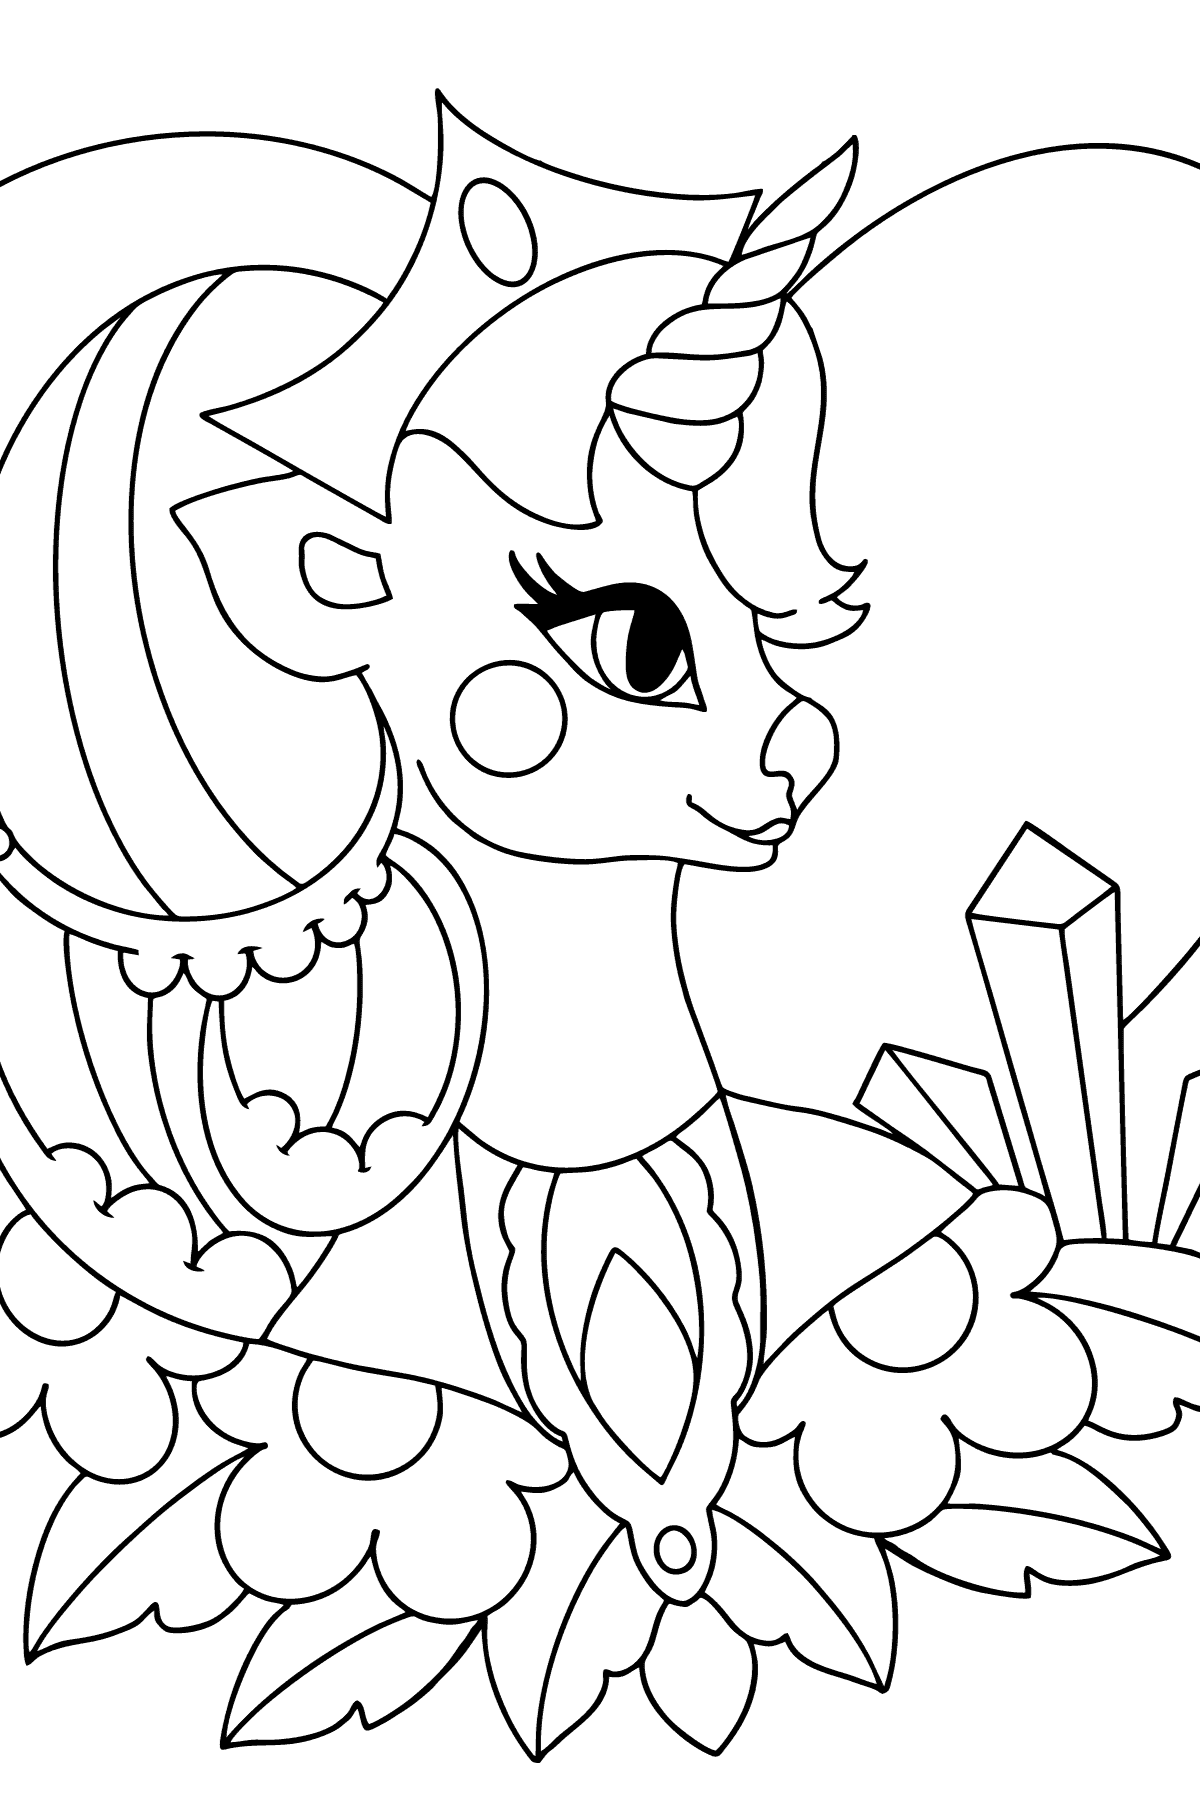 Coloring Page - A Unicorn Queen - Coloring Pages for Kids